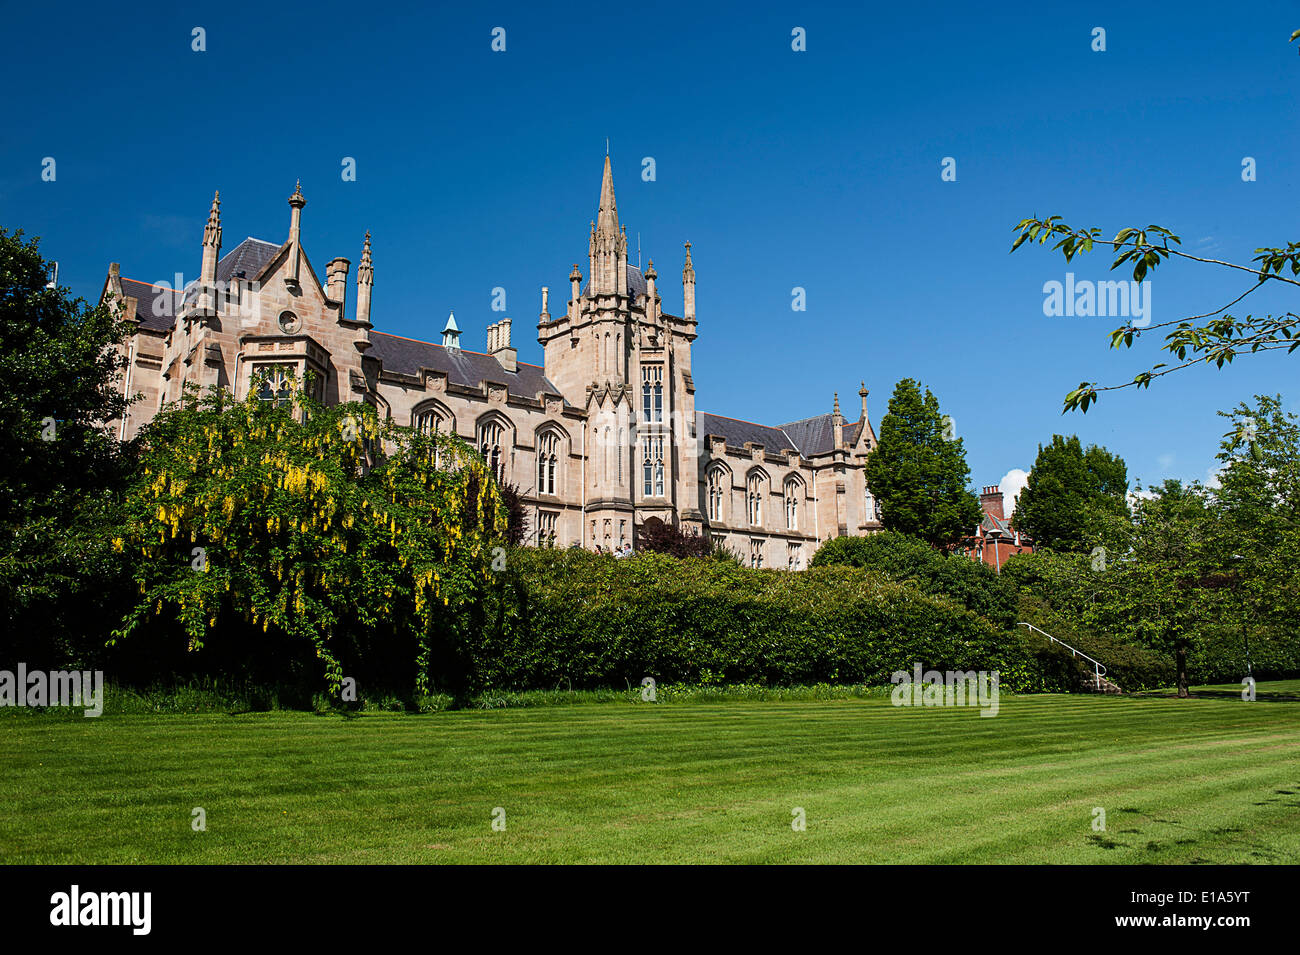 University of Ulster, Magee Campus, Derry, Londonderry, Northern Ireland - Stock Image